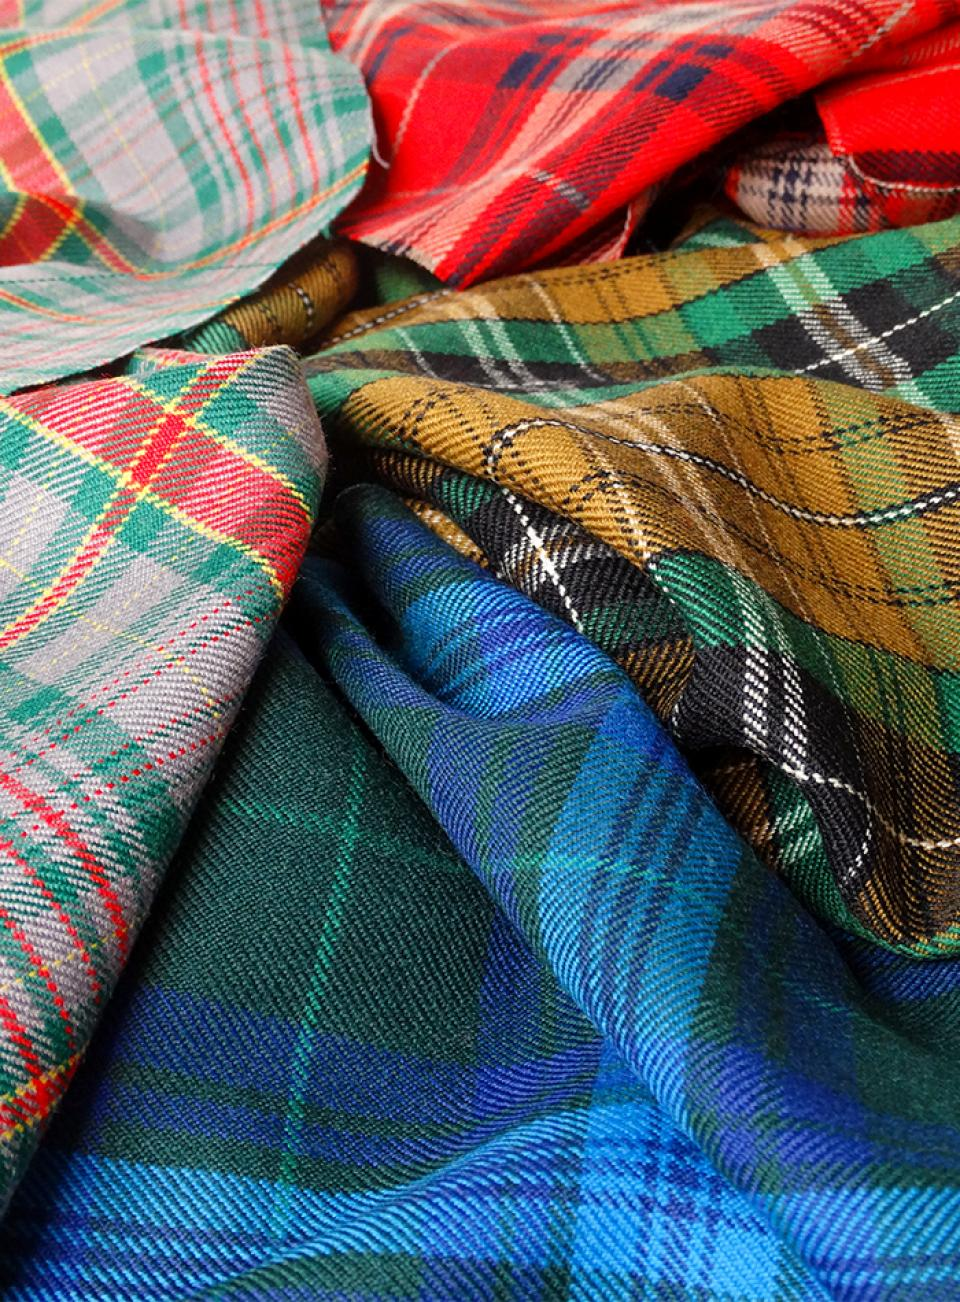 1kg Bag of Assorted Tartan Offcuts